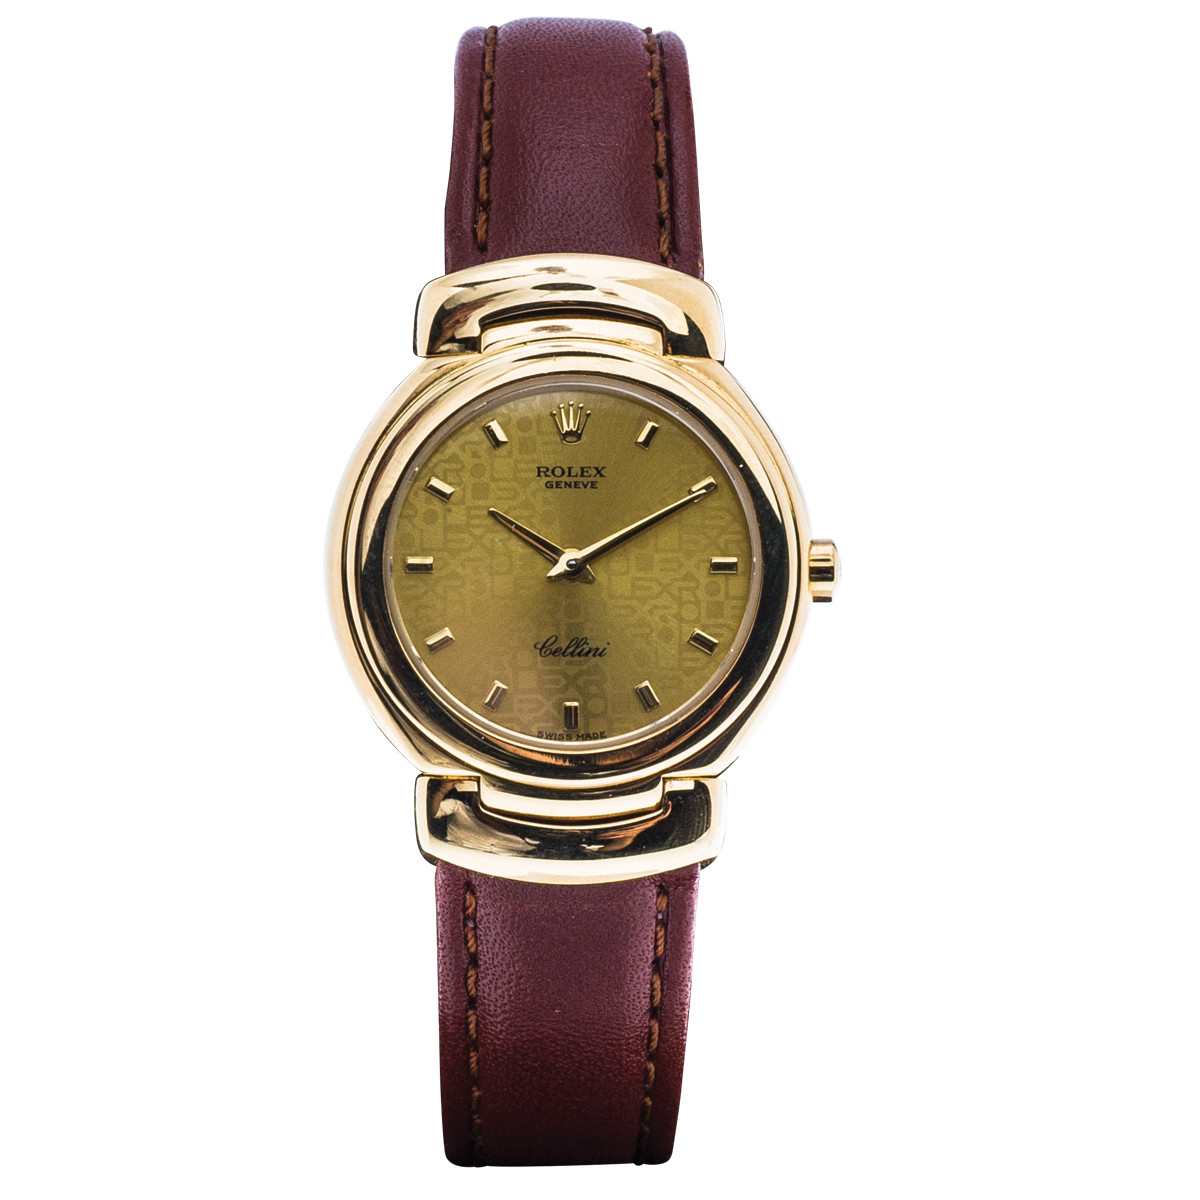 Preowned Women's Rolex Cellini